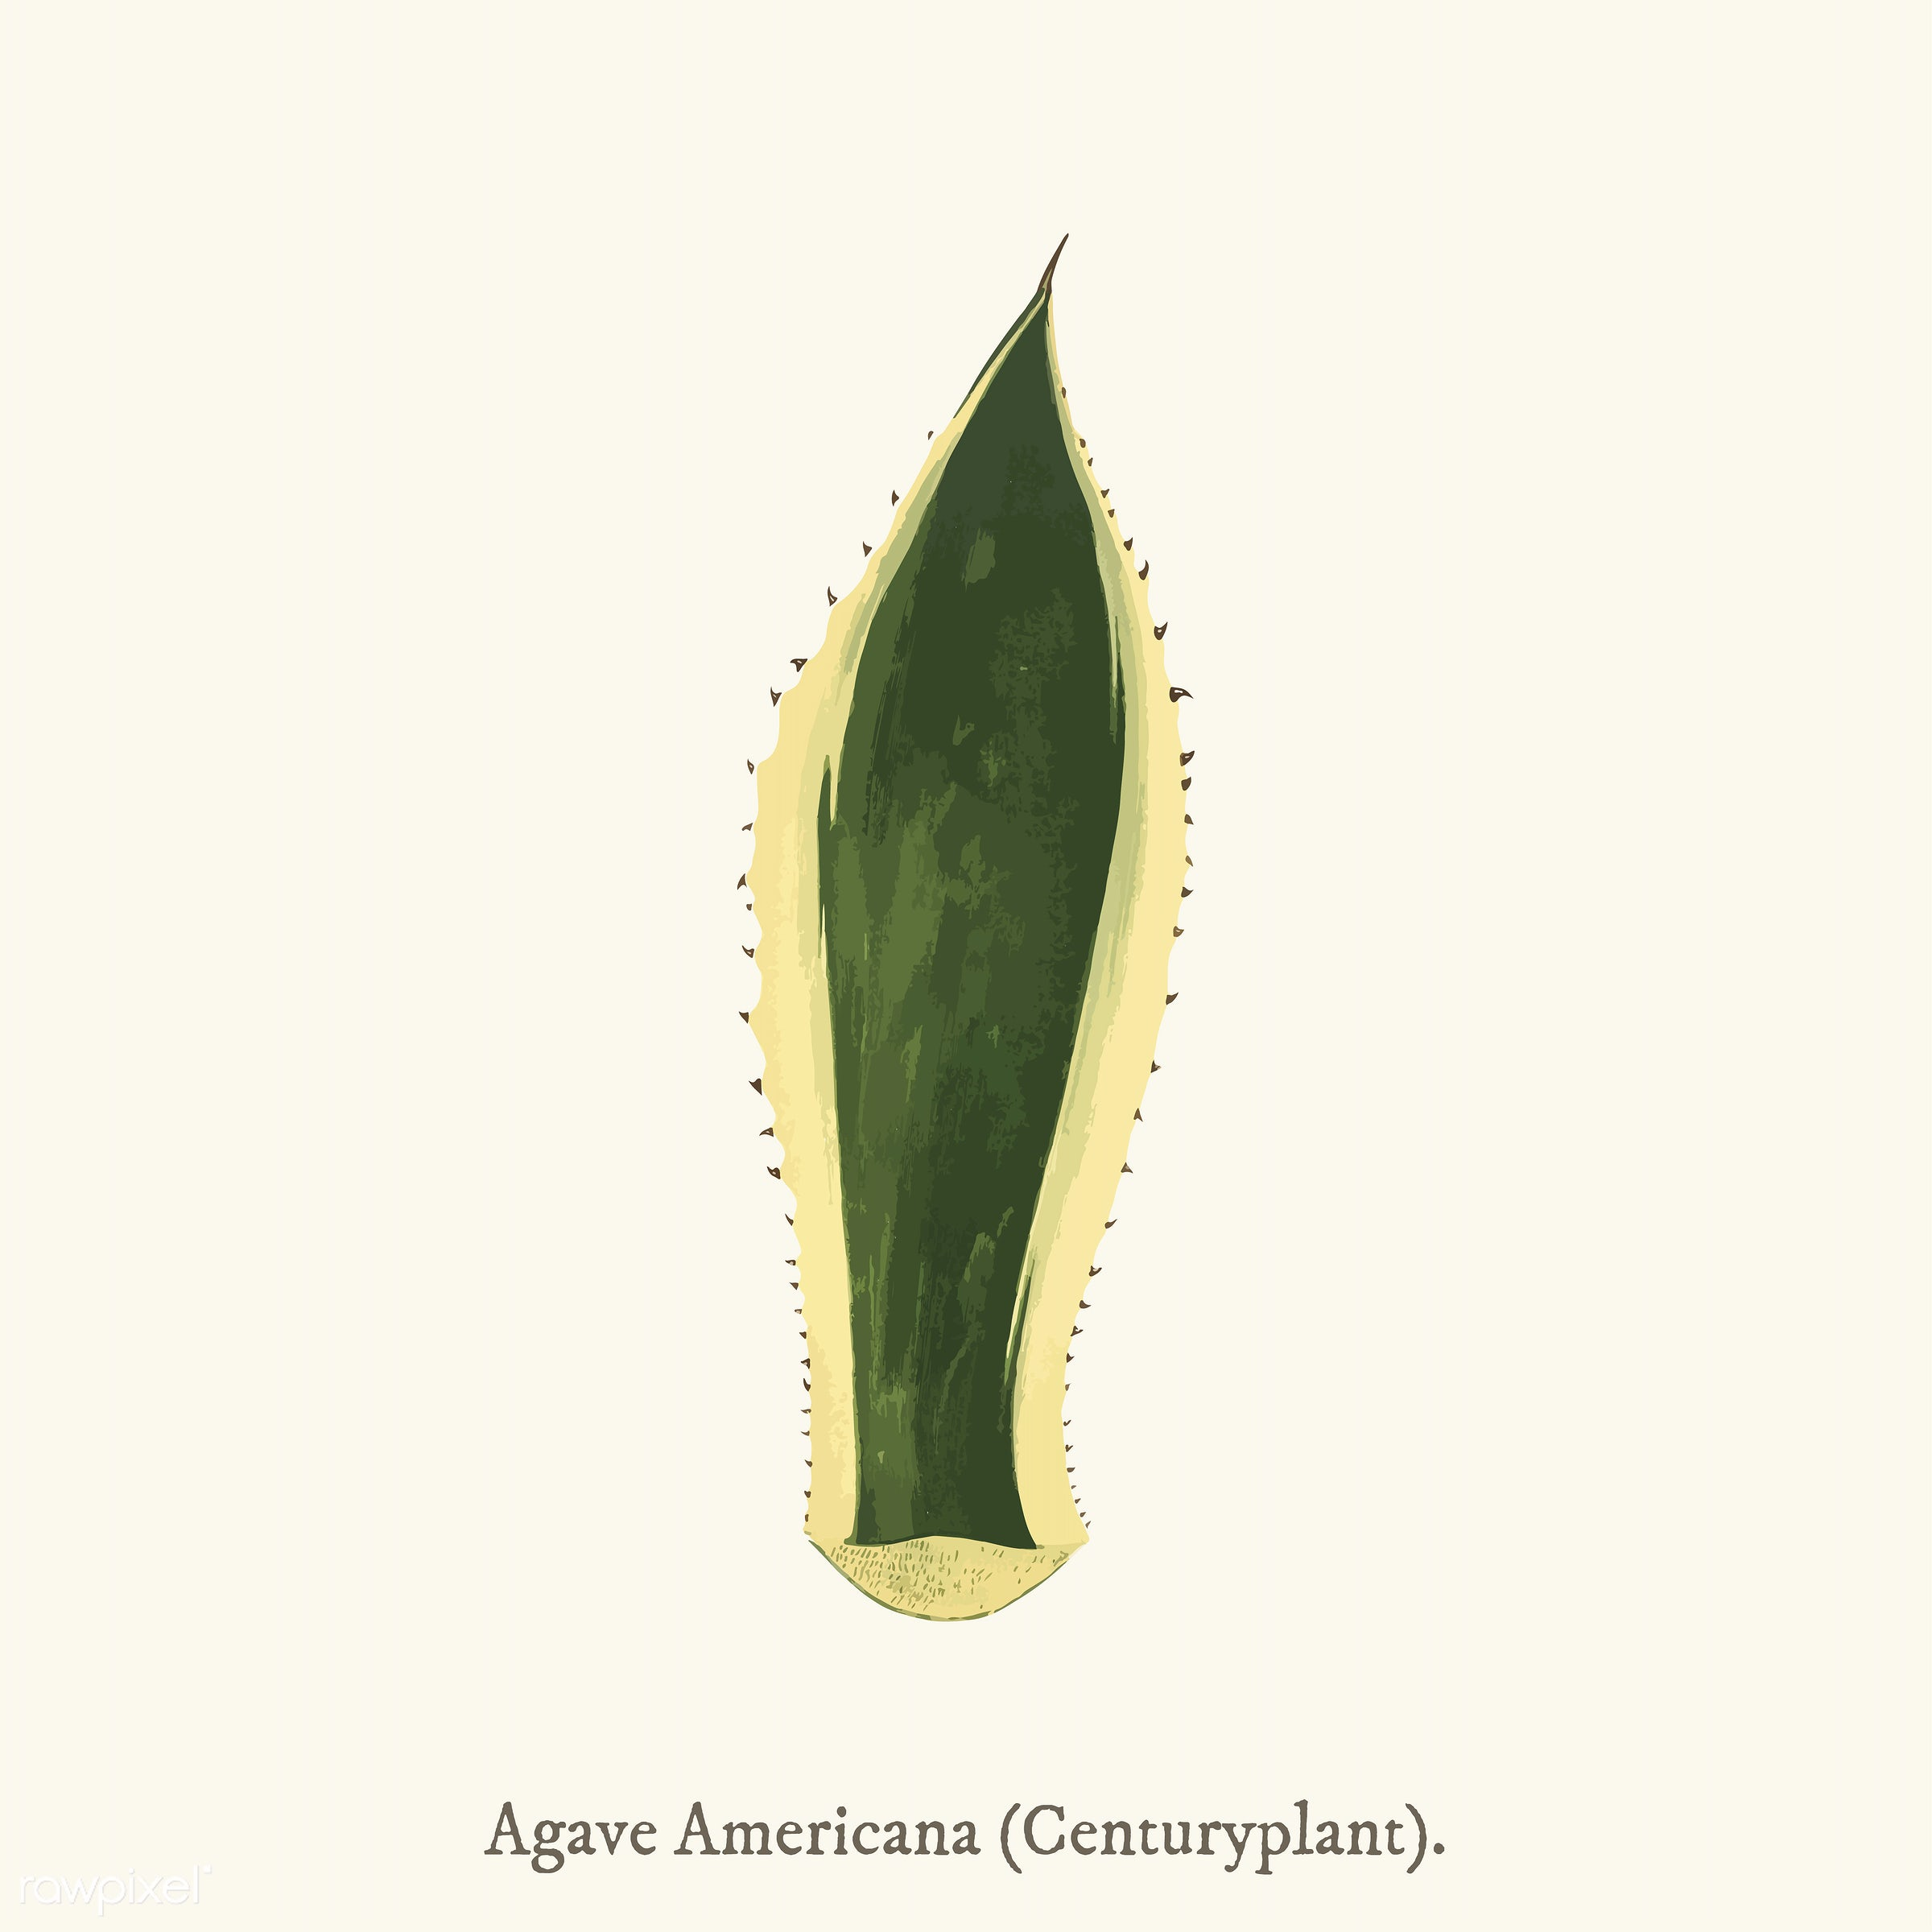 aloe, leaf, agave, agave americana, american aloe, americana, ancient, antique, background, century plant, centuryplant,...